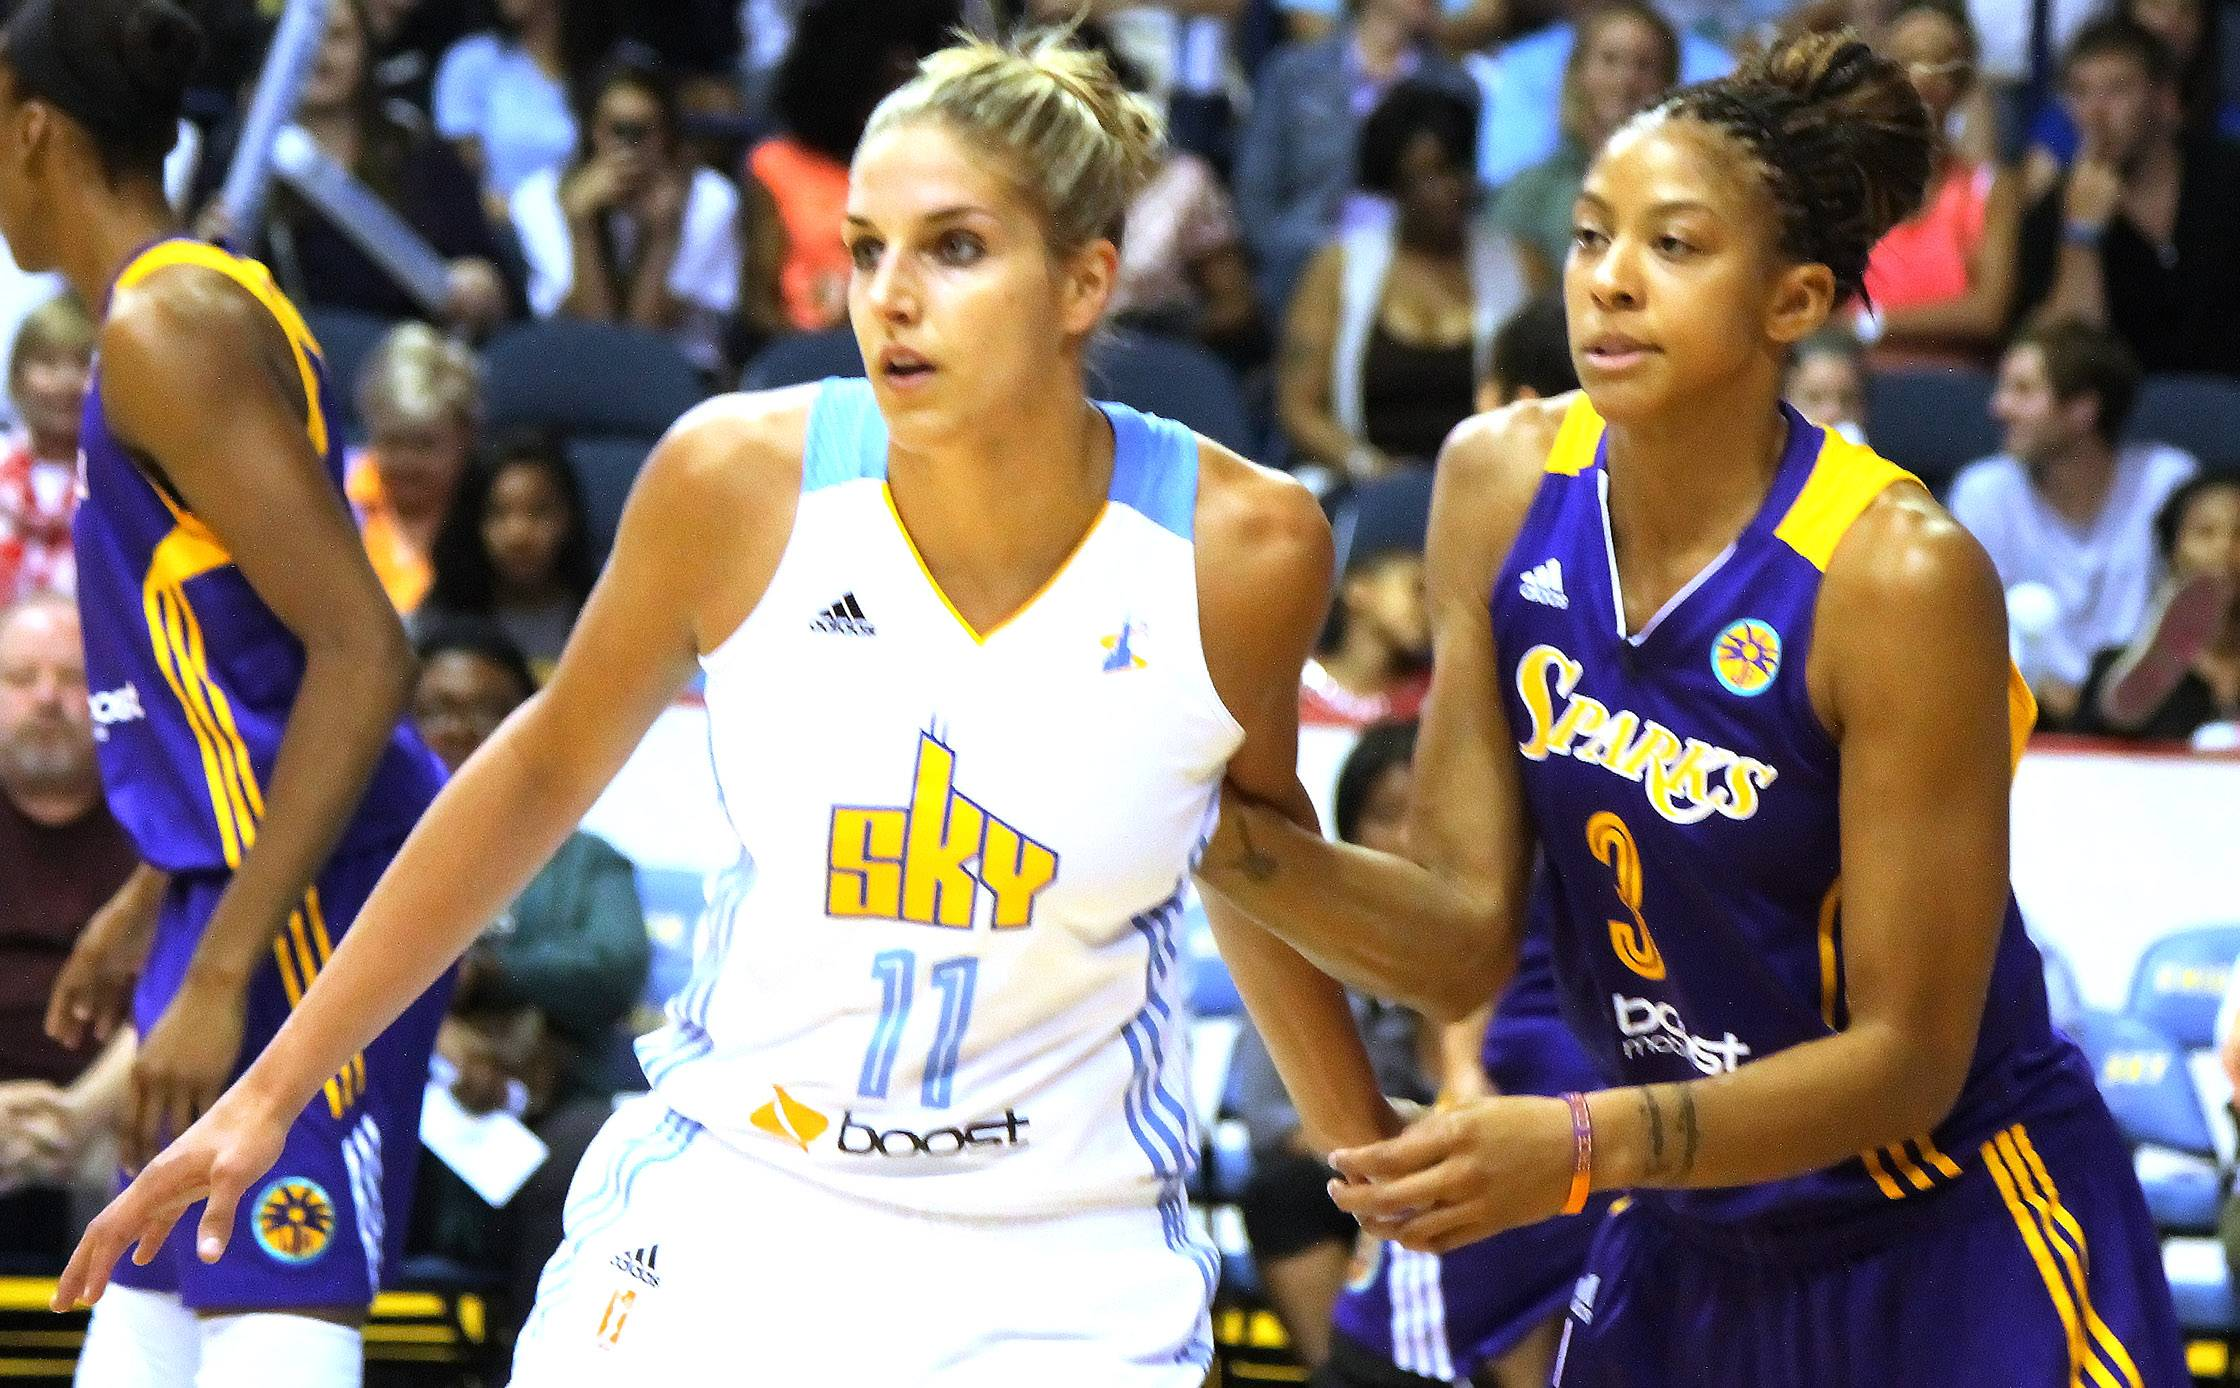 Two of Chicago's finest WNBA superstars, Candace Parker of the Los Angeles Sparks and Elena DelleDonne of the Chicago Sky battle each other during a game on Friday, June 6, at the Allstate Arena in Rosemont.